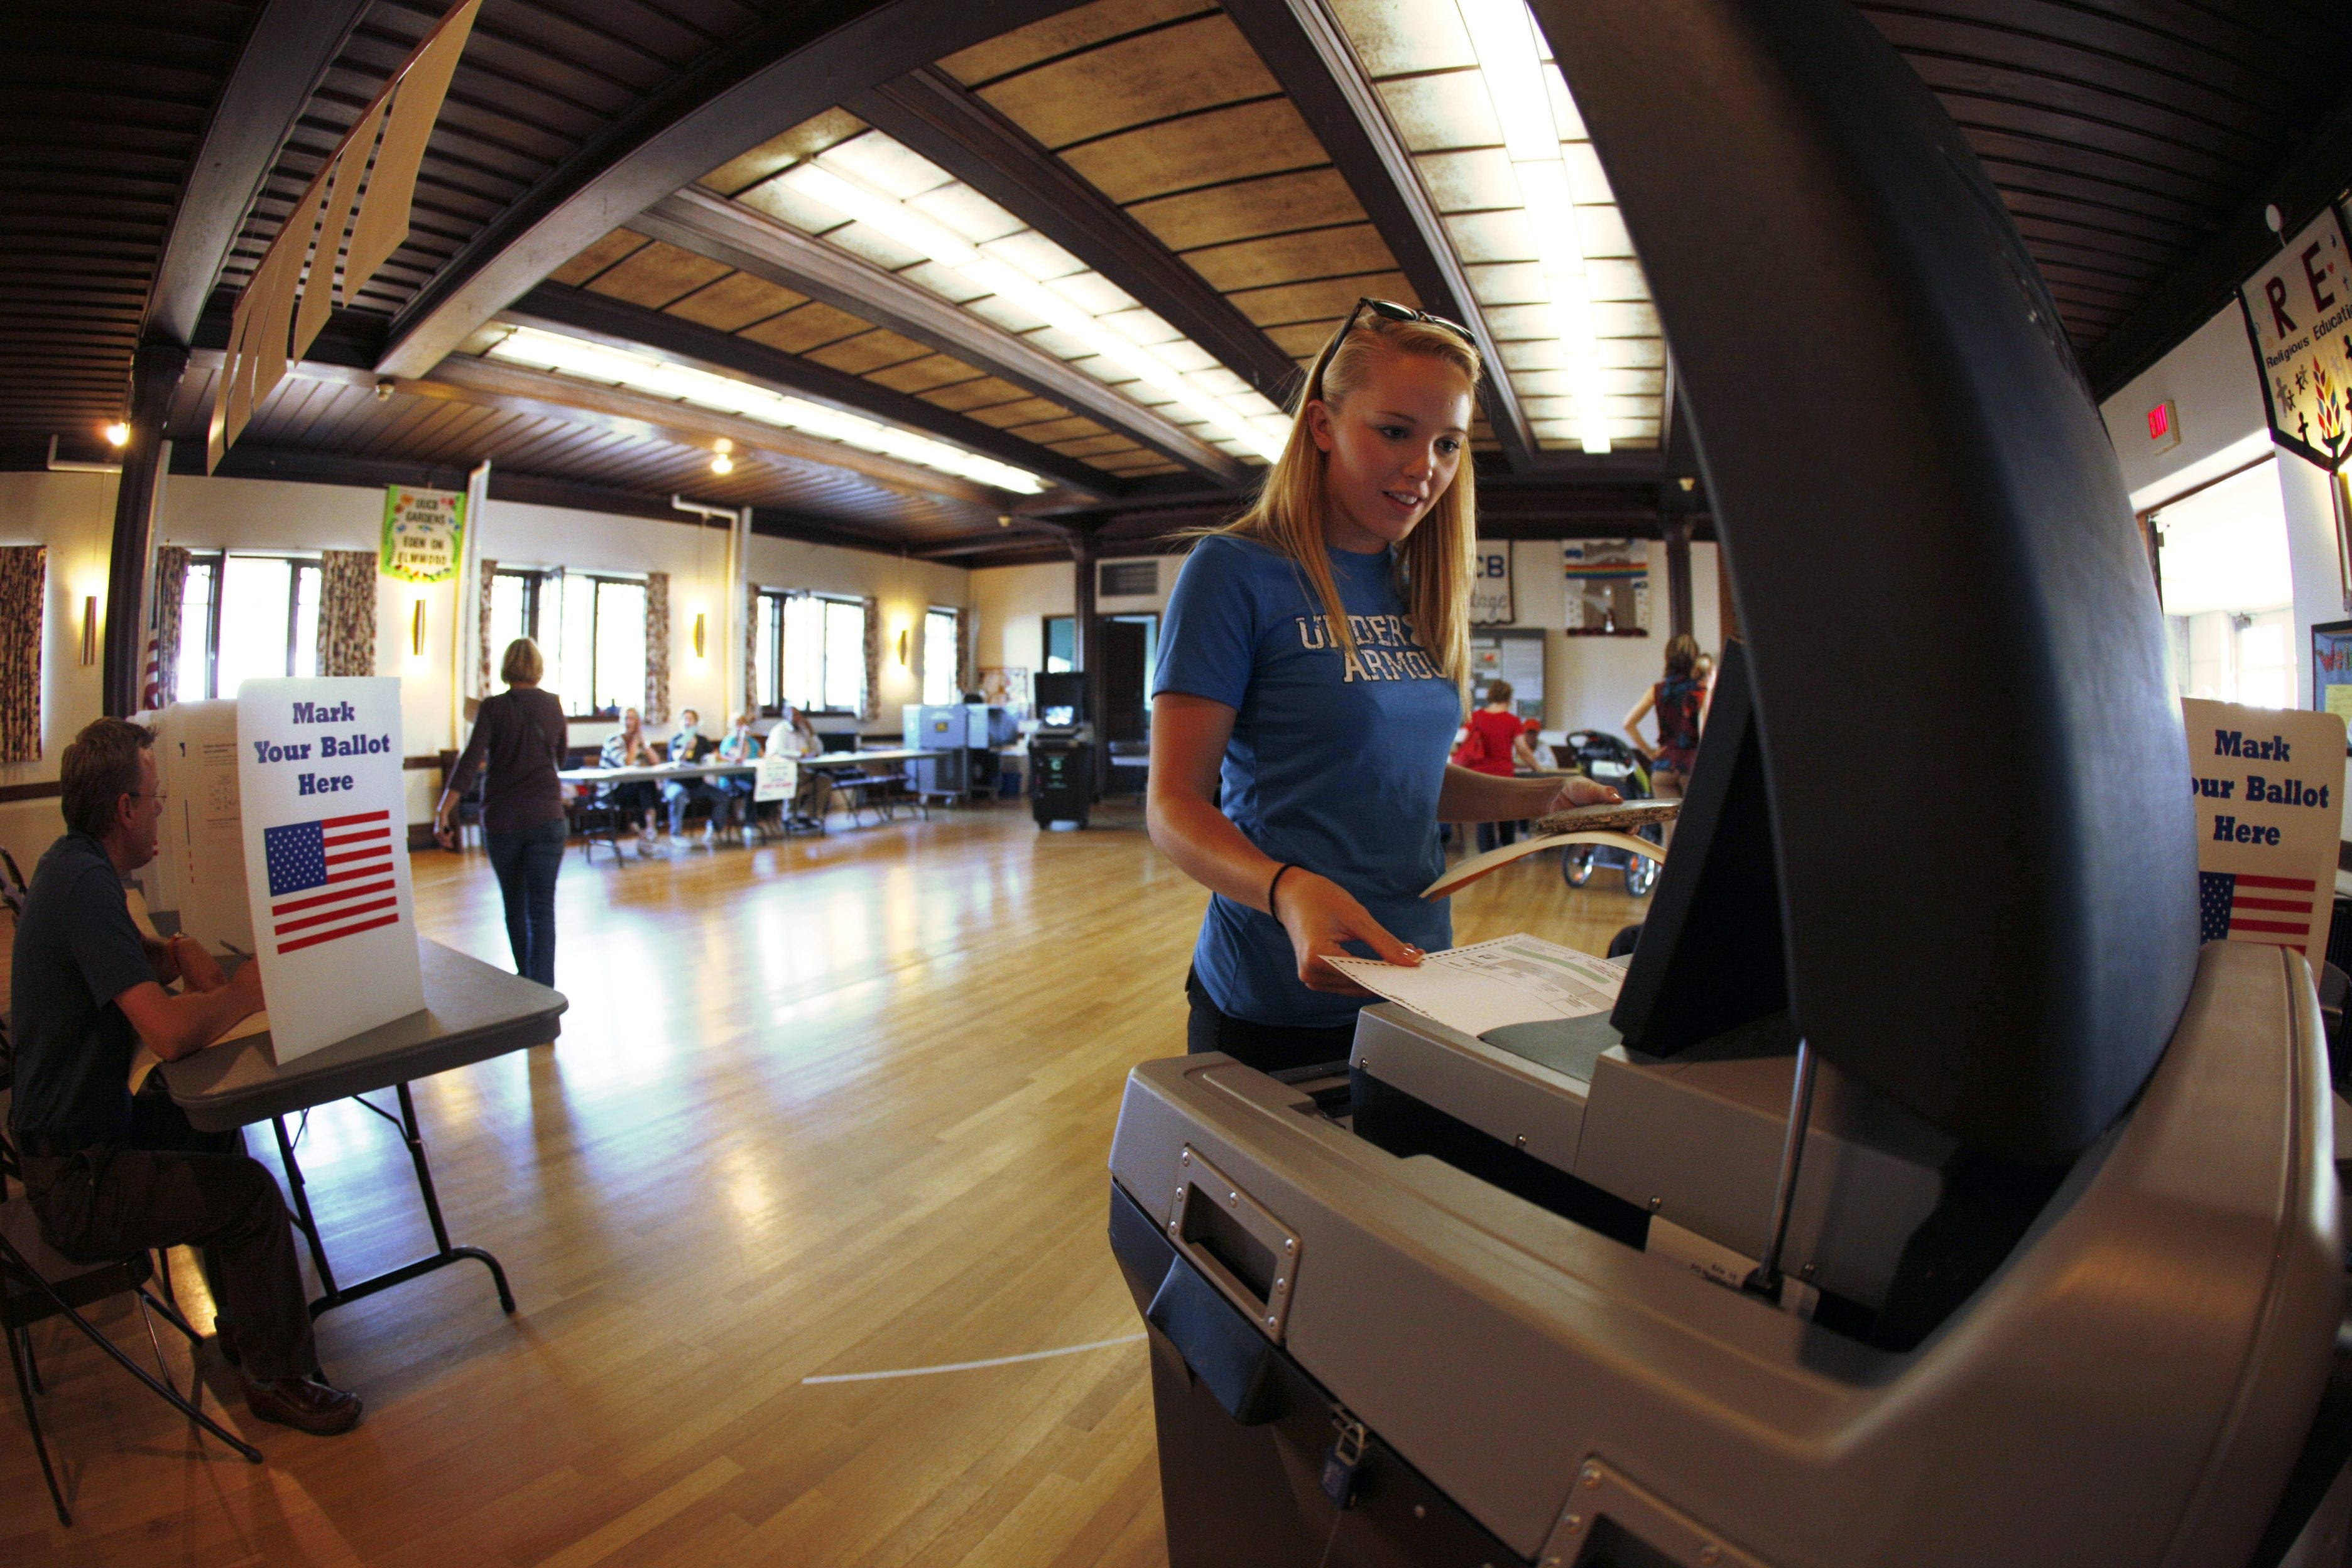 Morgan Wahlstrom casts her ballot in Unitarian Universalist Church on Elmwood Avenue. Voter turnout on primary day has dropped dramatically over the last few decades.